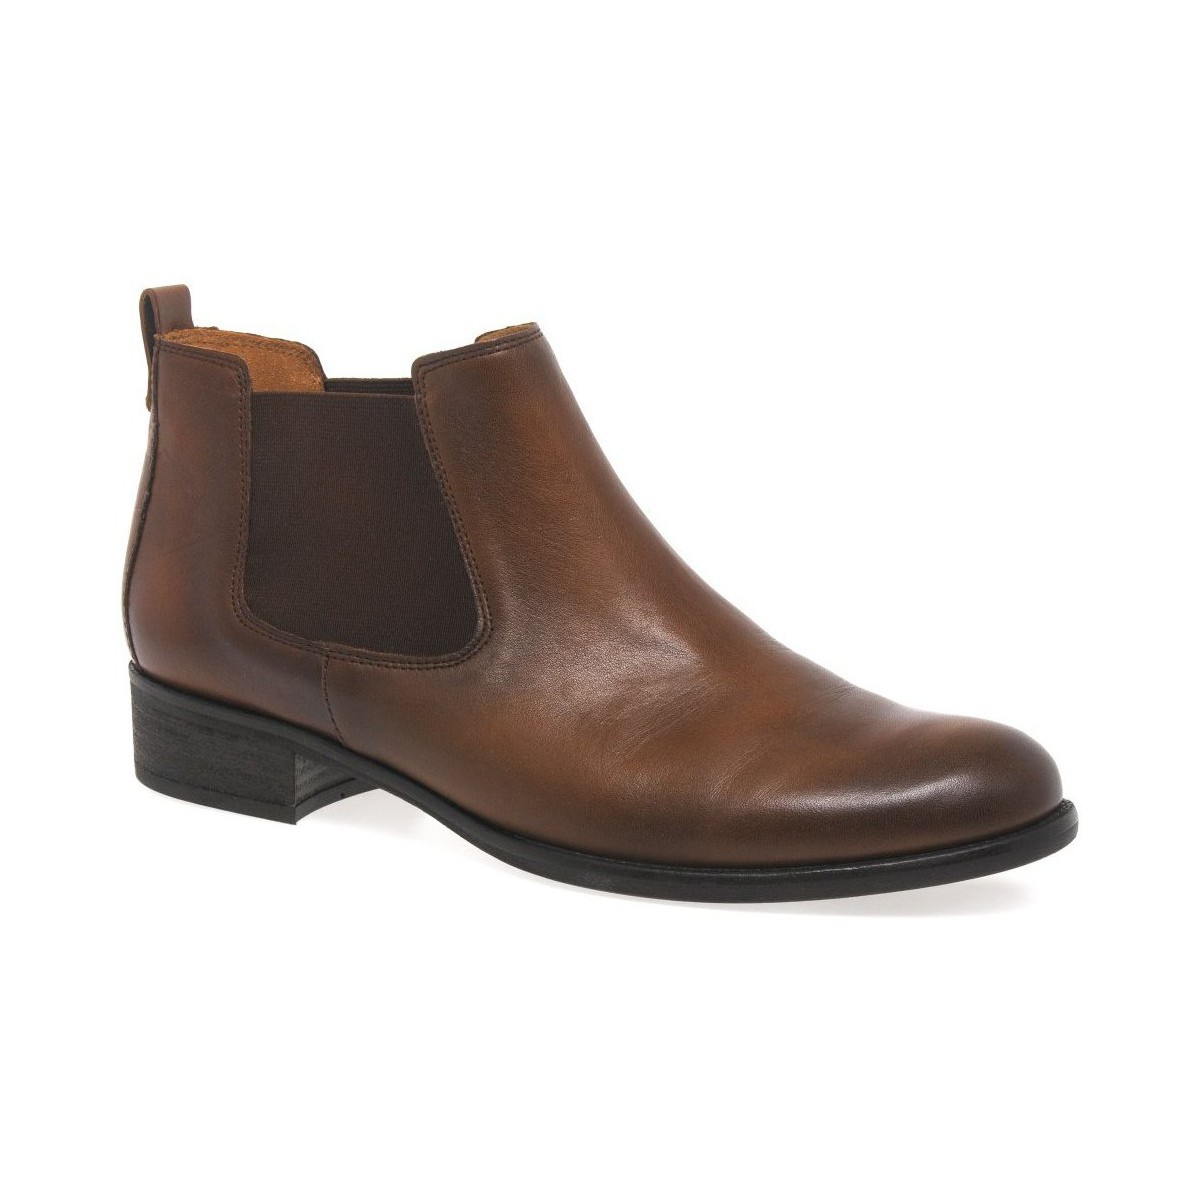 gabor zodiac womens chelsea boots brown shoes mid boots women. Black Bedroom Furniture Sets. Home Design Ideas